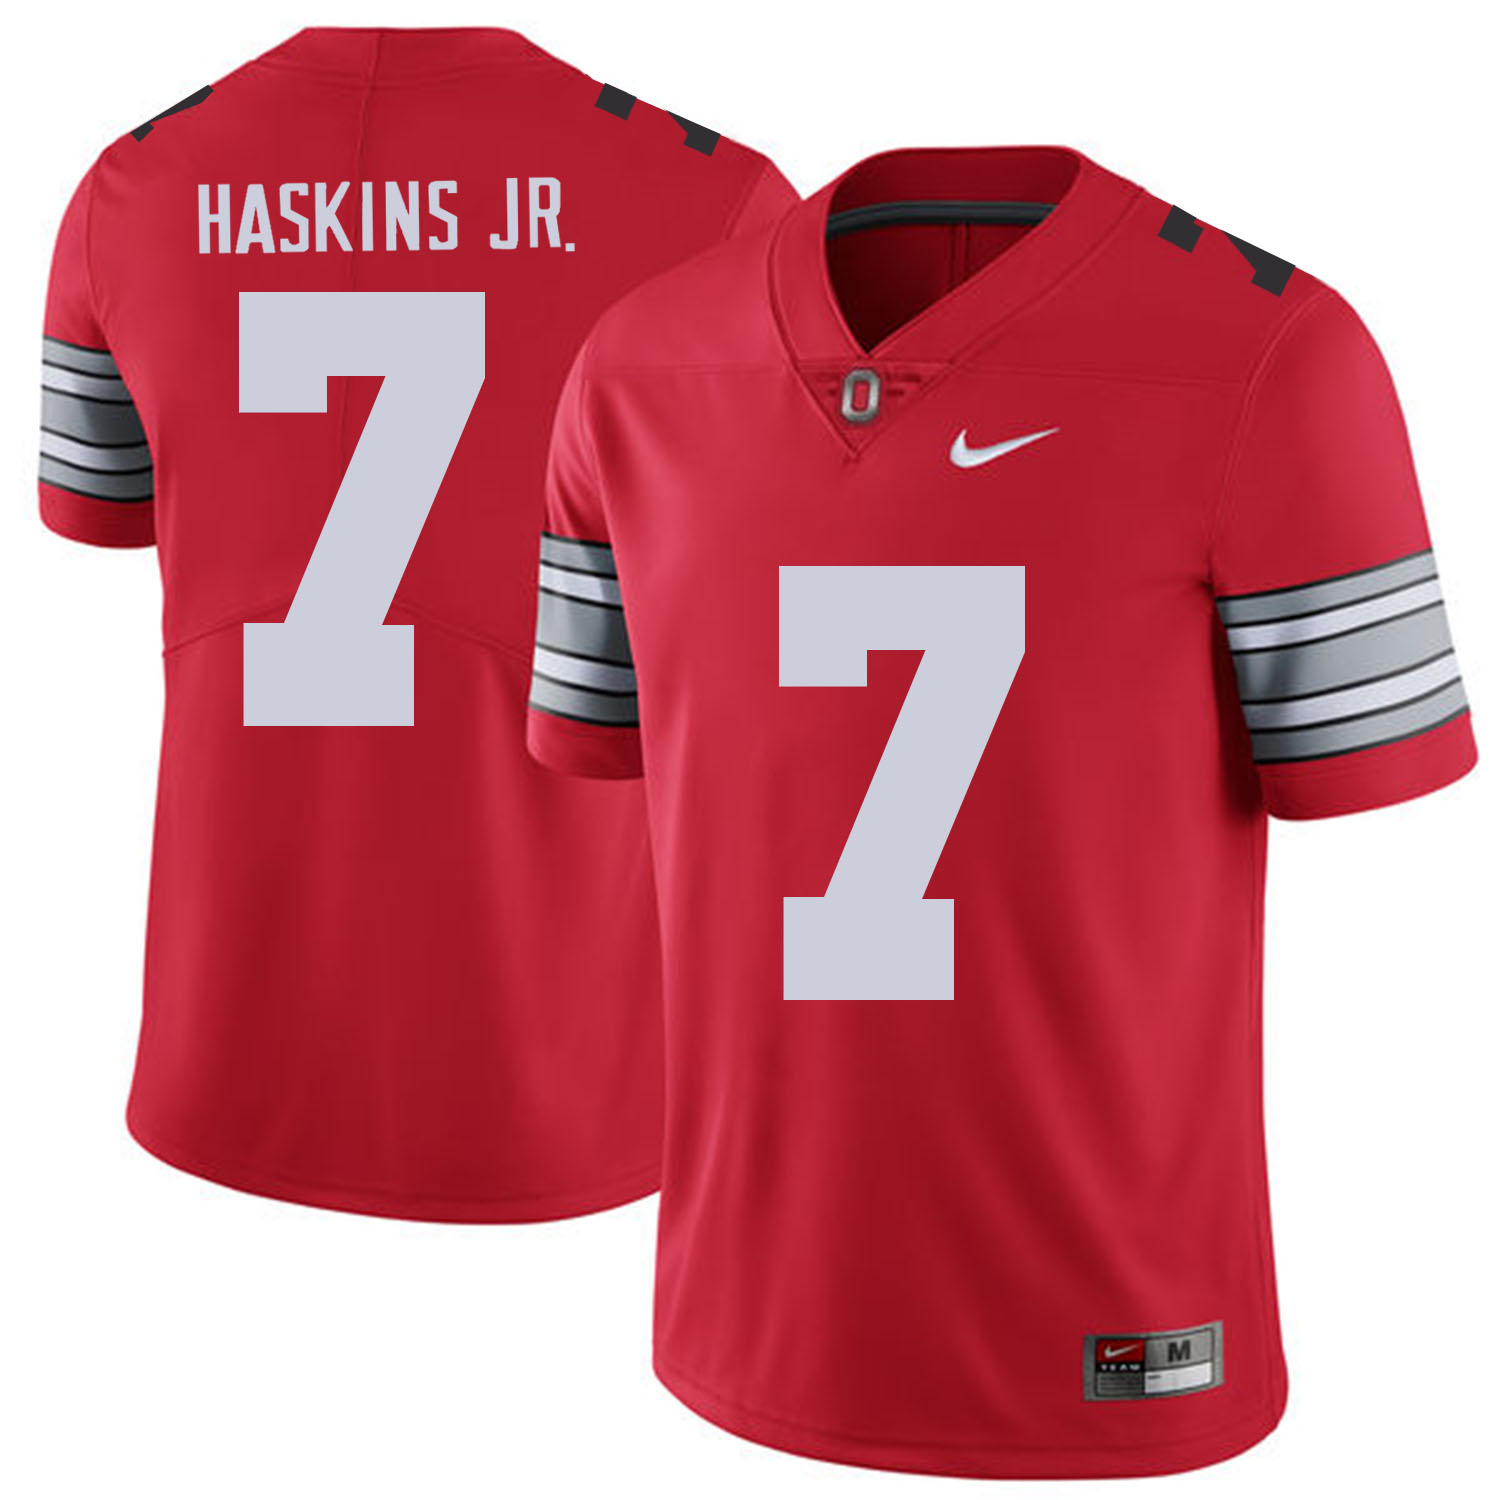 Men Ohio State 7 Haskins jr Red Customized NCAA Jerseys